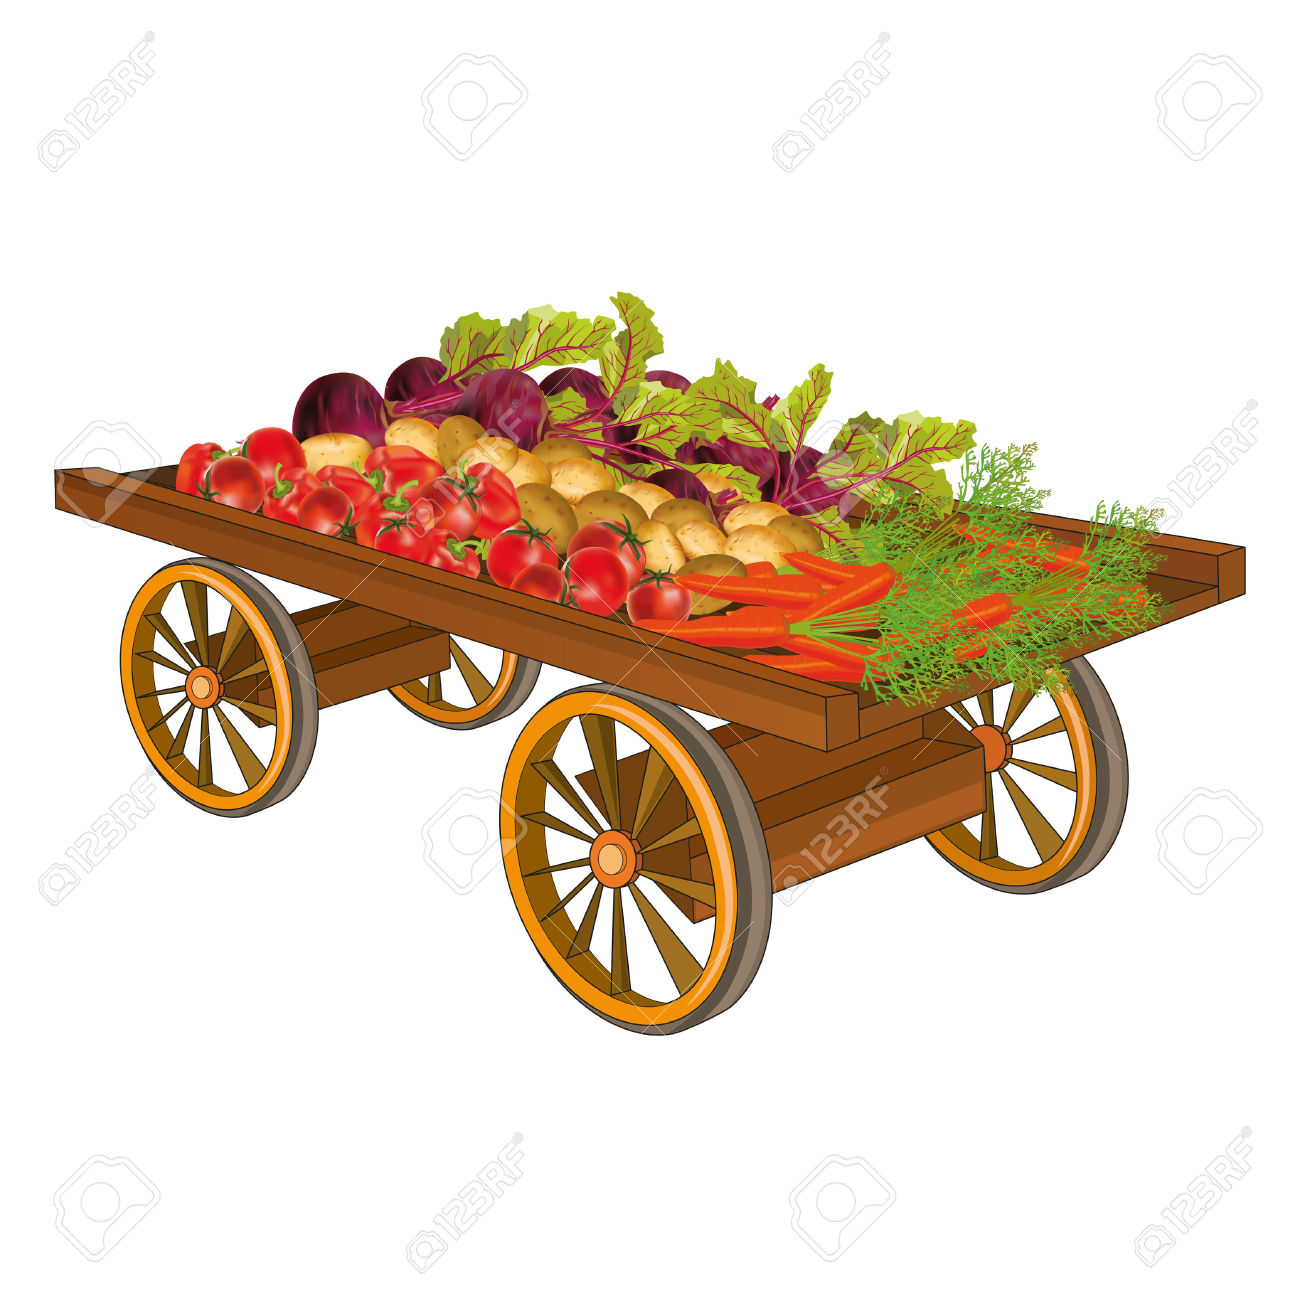 Wooden Cart With Harvest Of Vegetables.